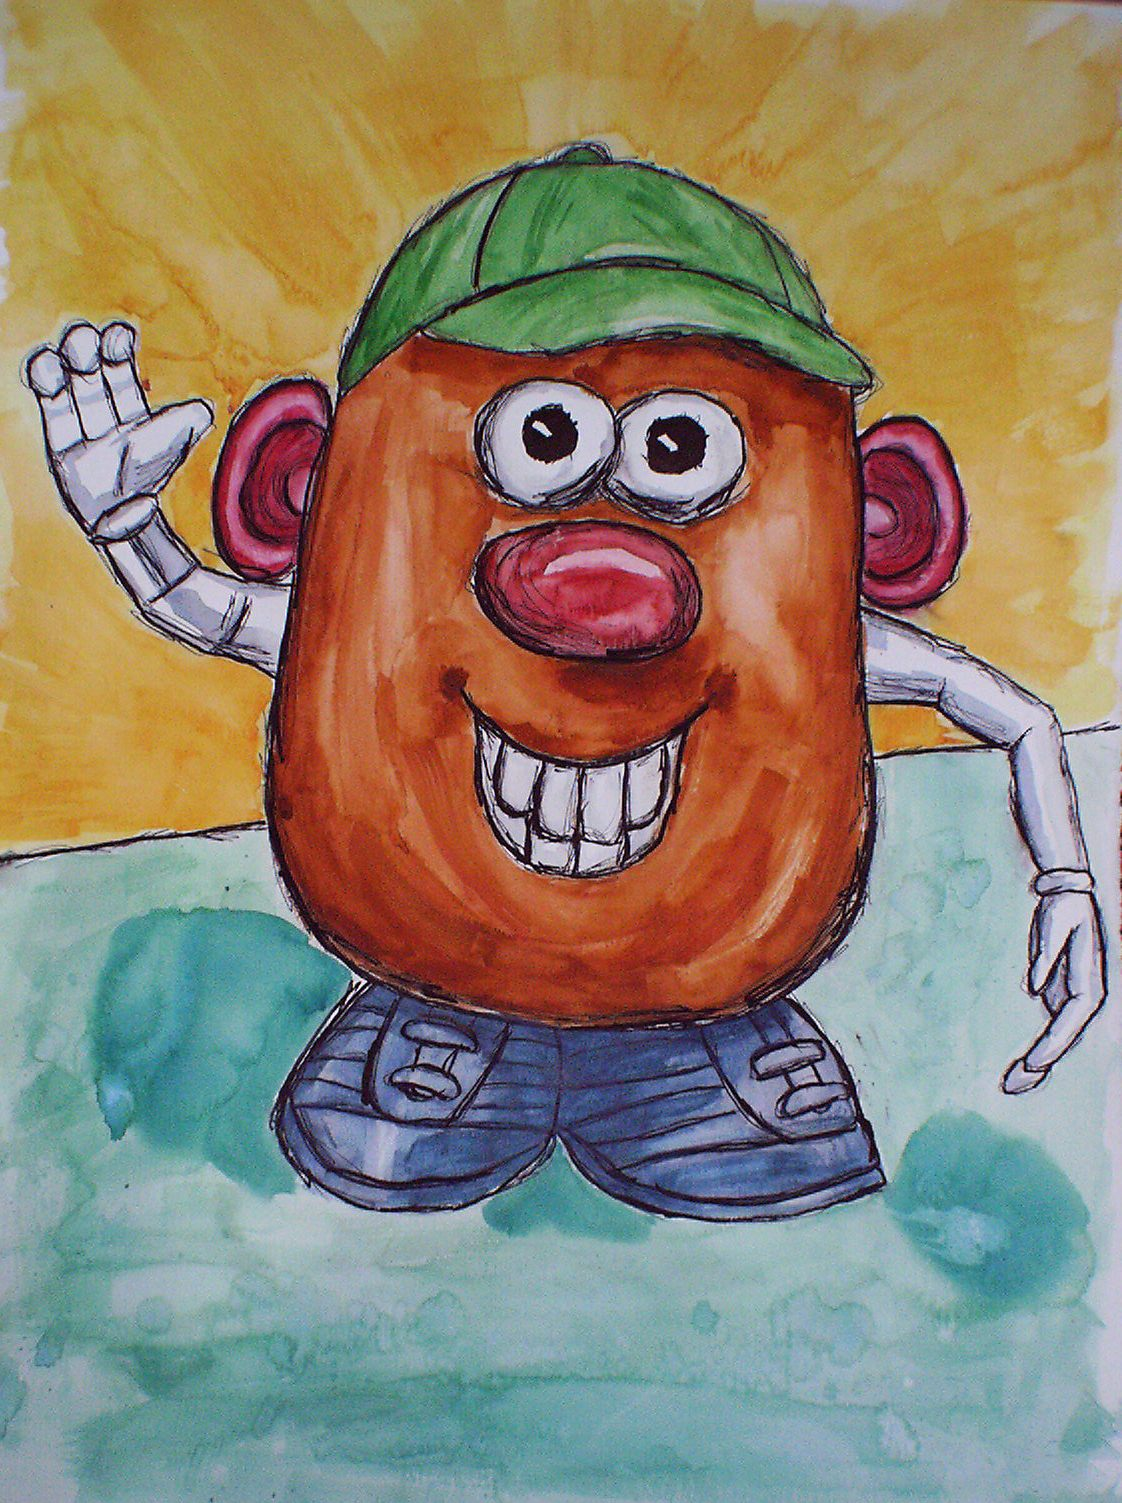 Mr. Potato Head.jpg